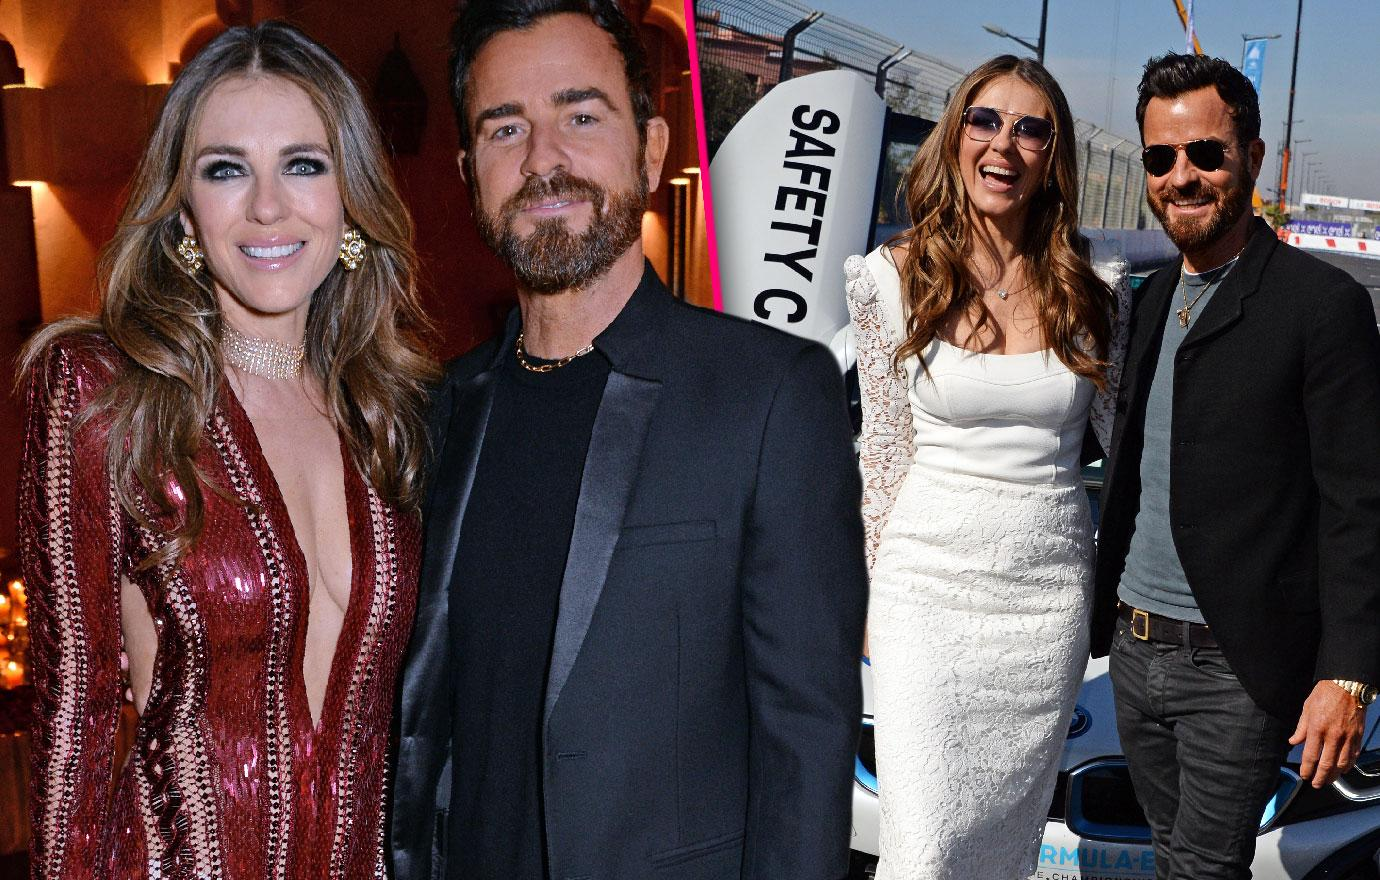 Justin Theroux And Elizabeth Hurley Stoke Romance Rumors At Races